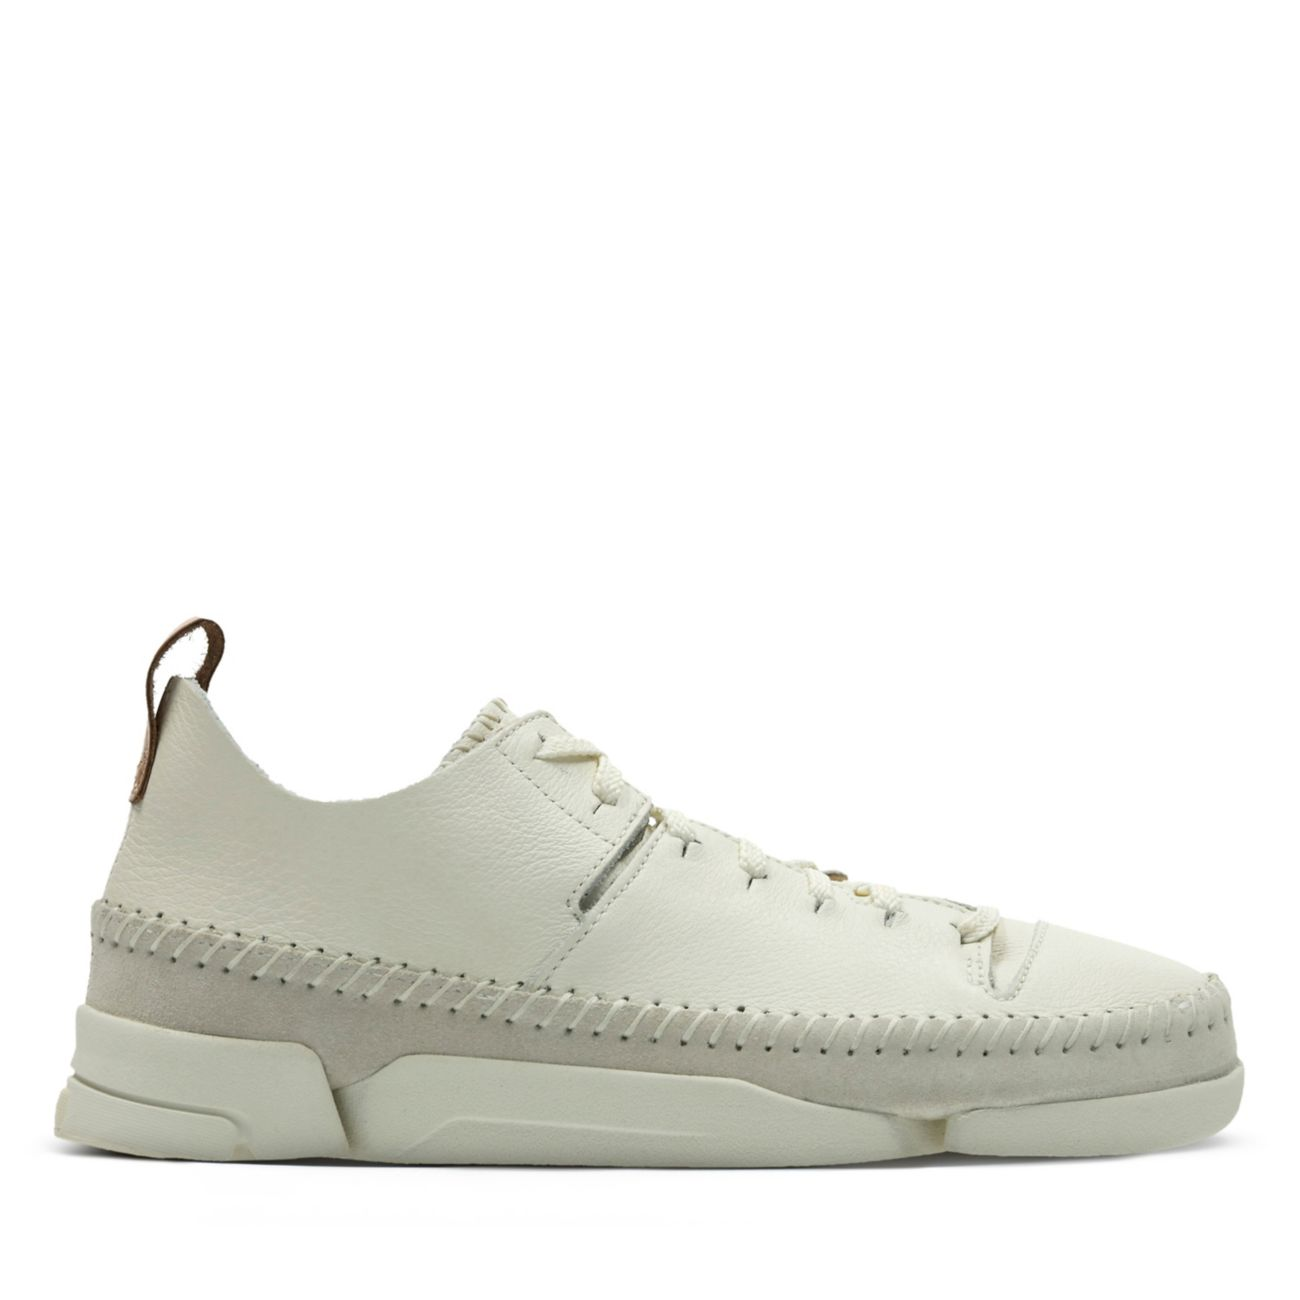 67e36926611f3b Trigenic Flex. White Leather - Originals Womens Shoes - Clarks® Shoes  Official Site | Clarks